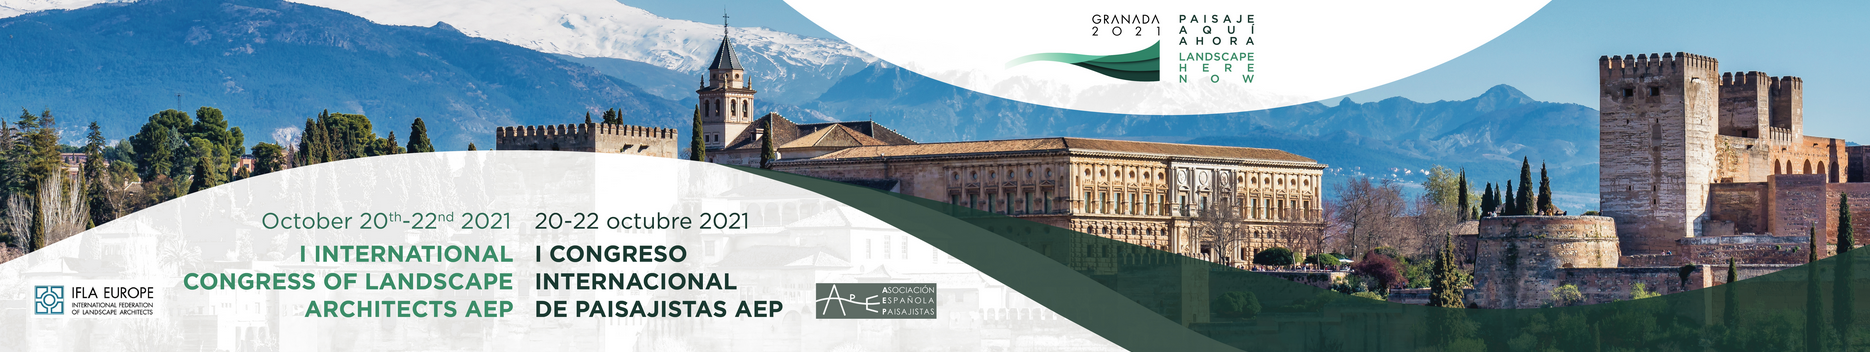 "1st International Congress of Landscape Architects AEP - ""Landscape Here and Now"" 20-22 October 2021 - Call for Abstracts! - deadline 1 May 2021!"